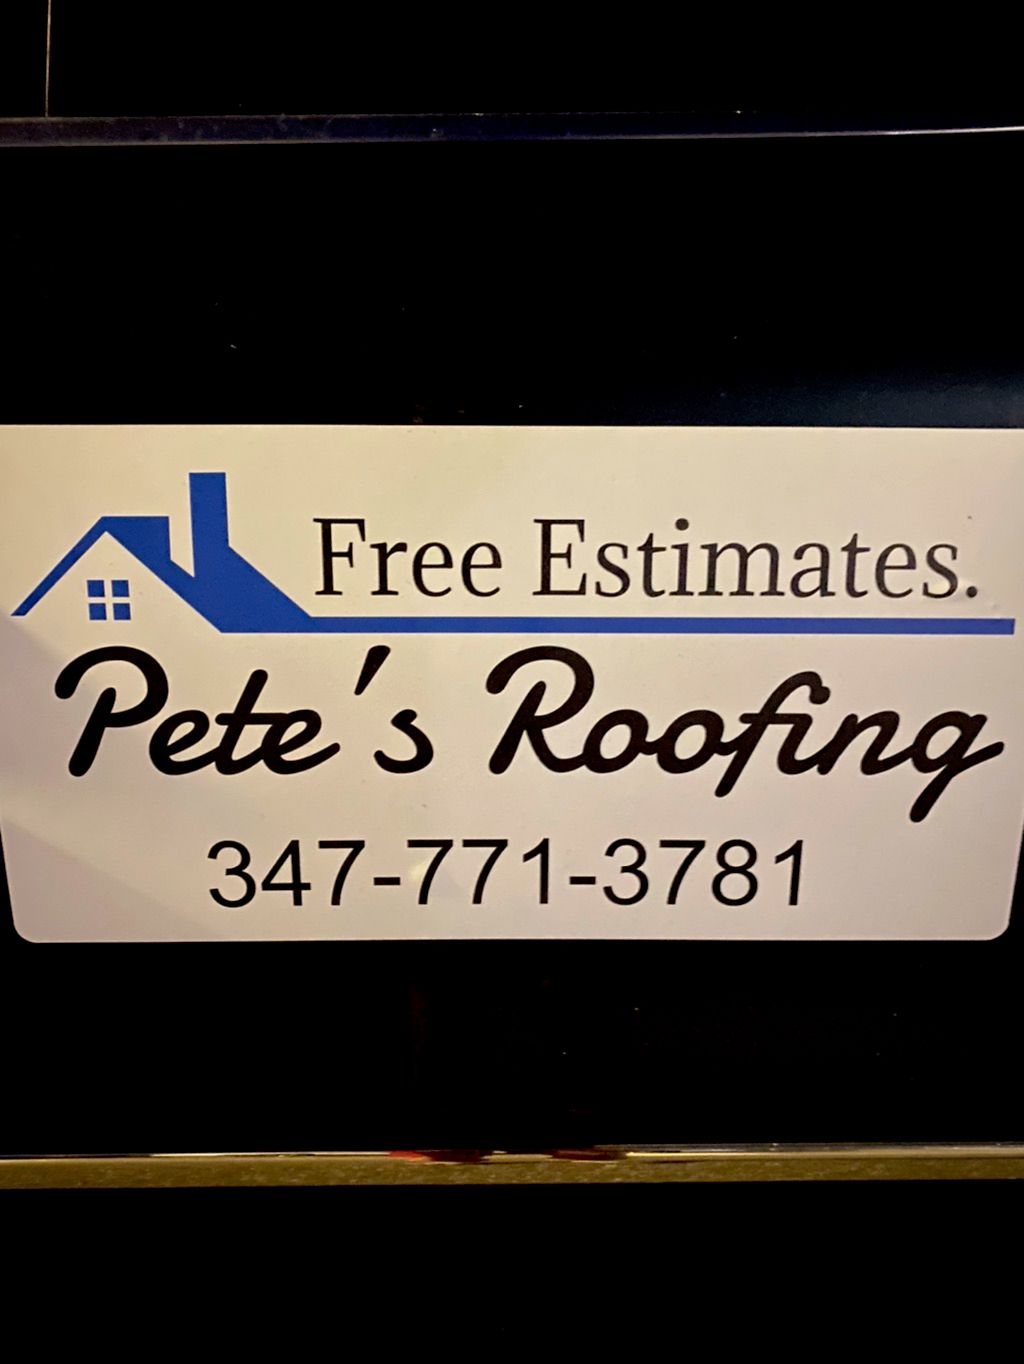 Pete's Roofing